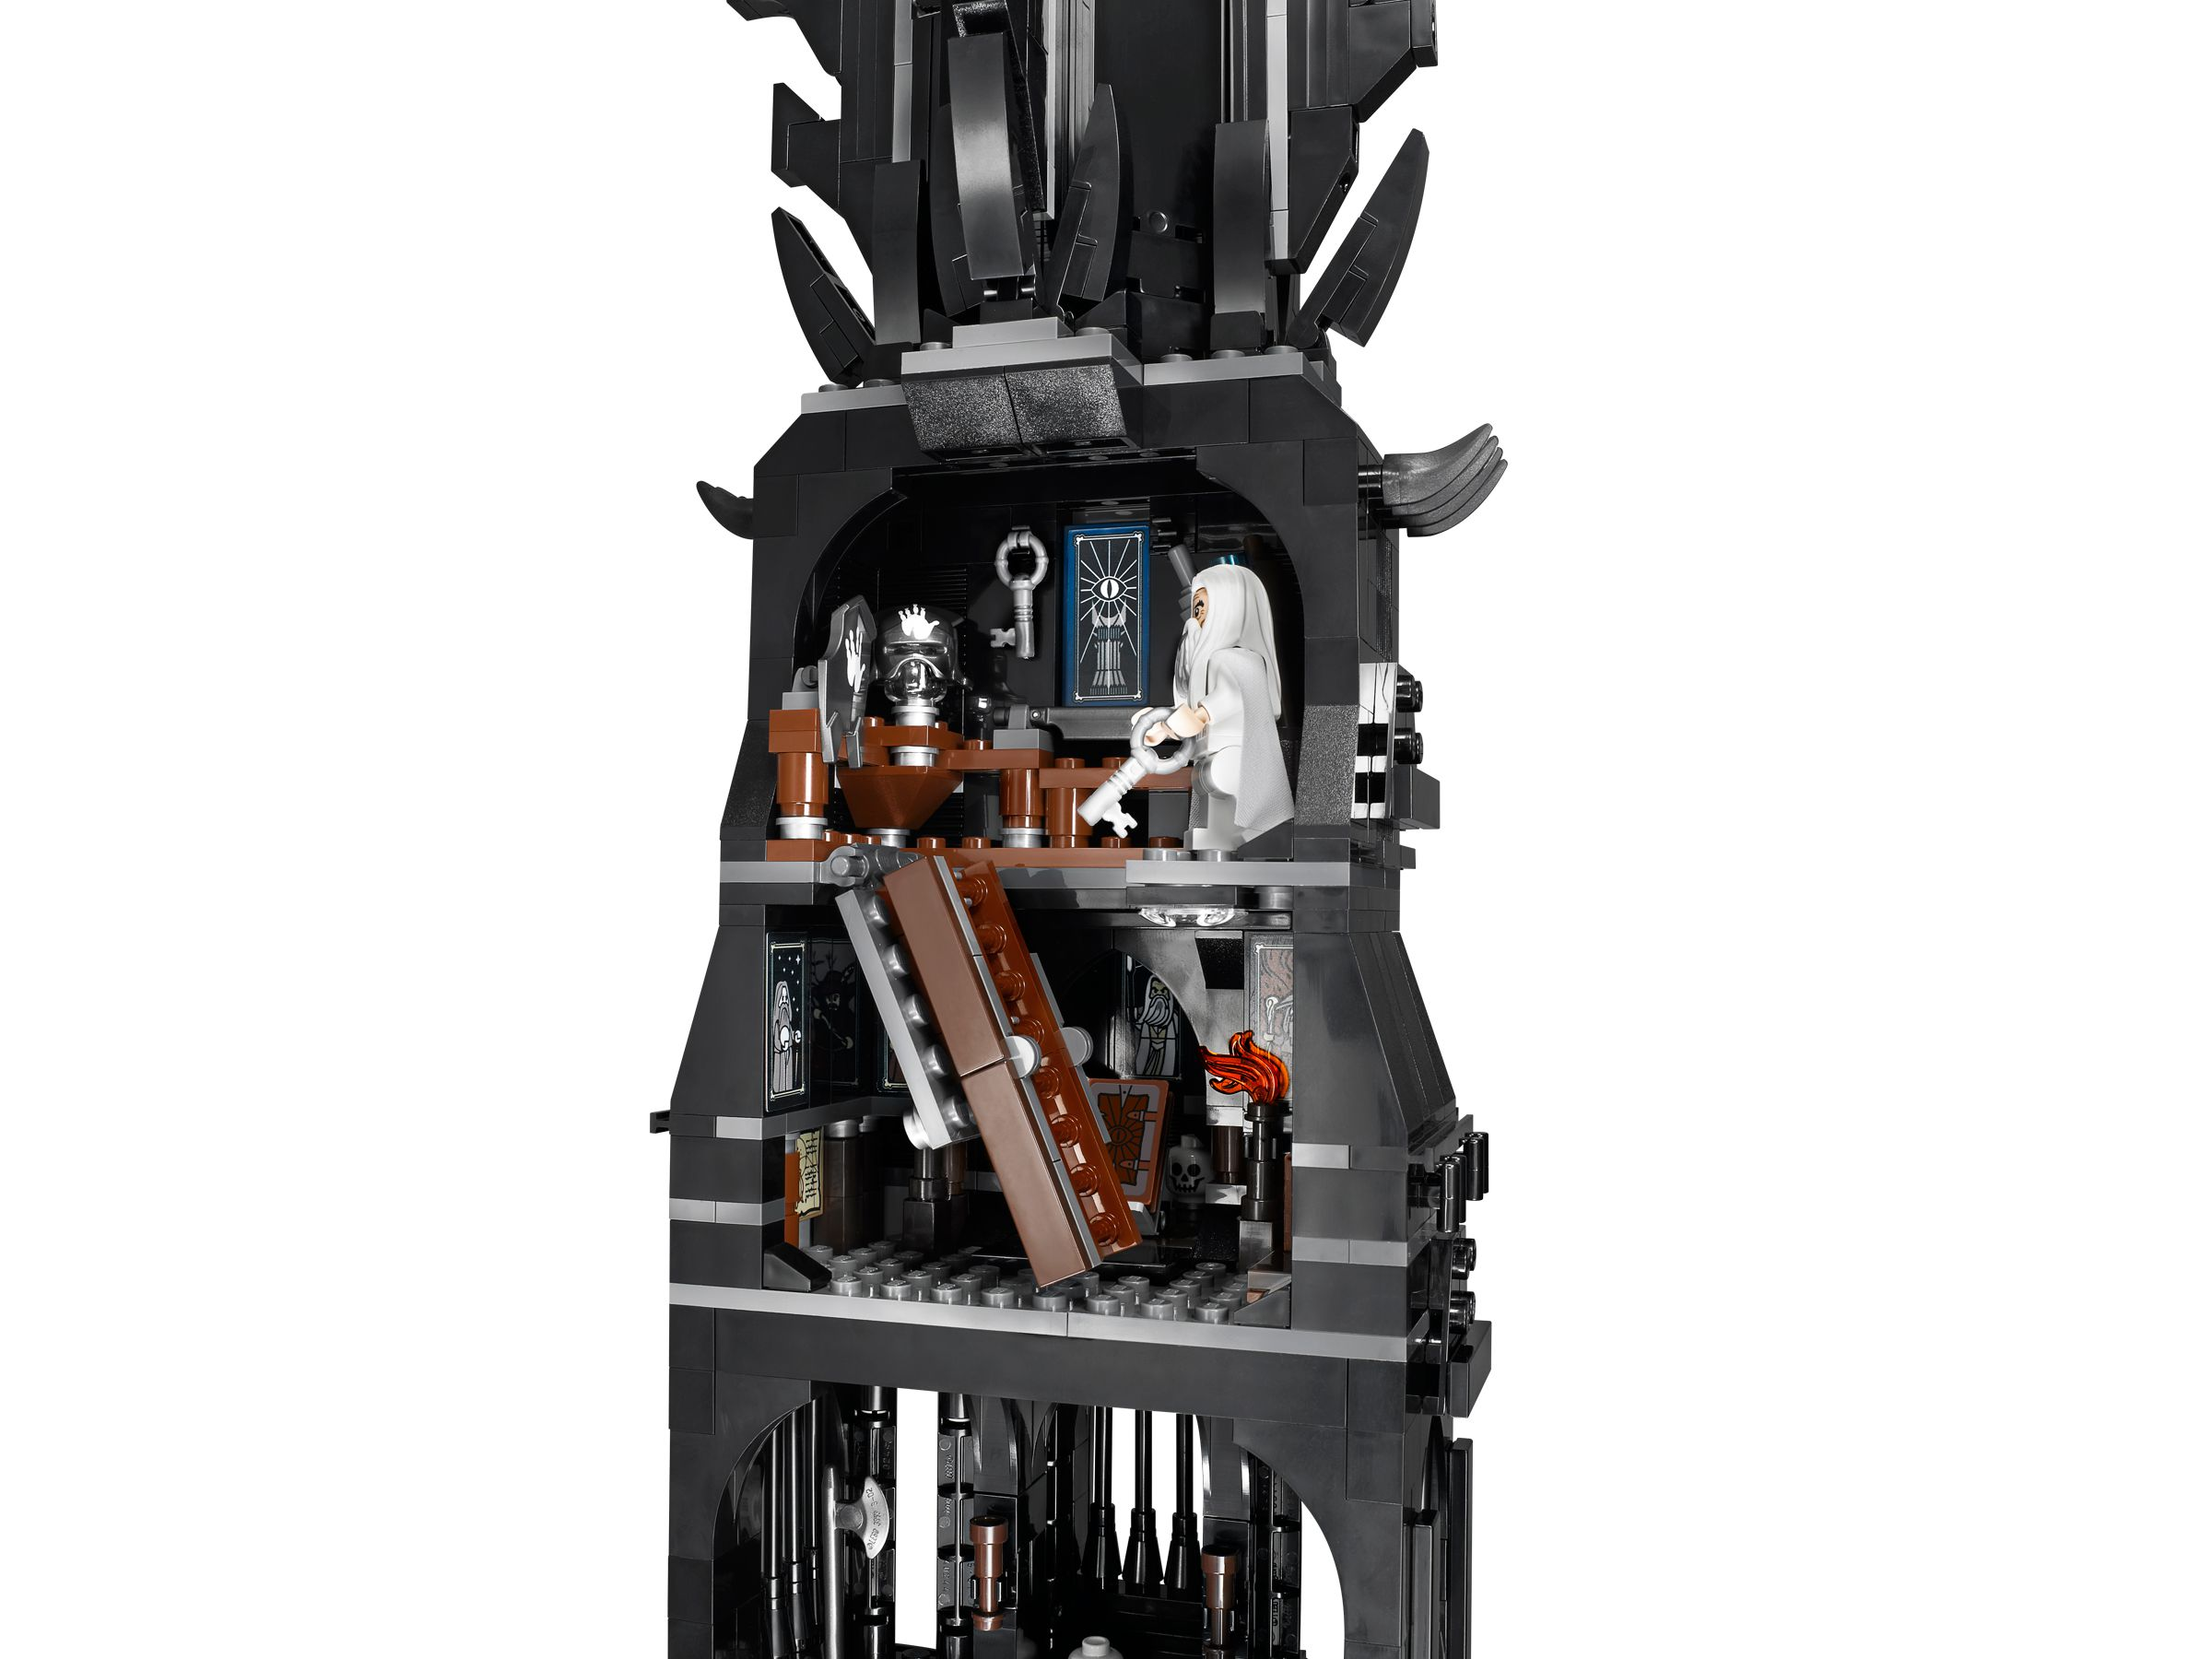 LEGO Lord of the Rings 10237 Der Turm von Orthanc™ LEGO_10237_alt2.jpg